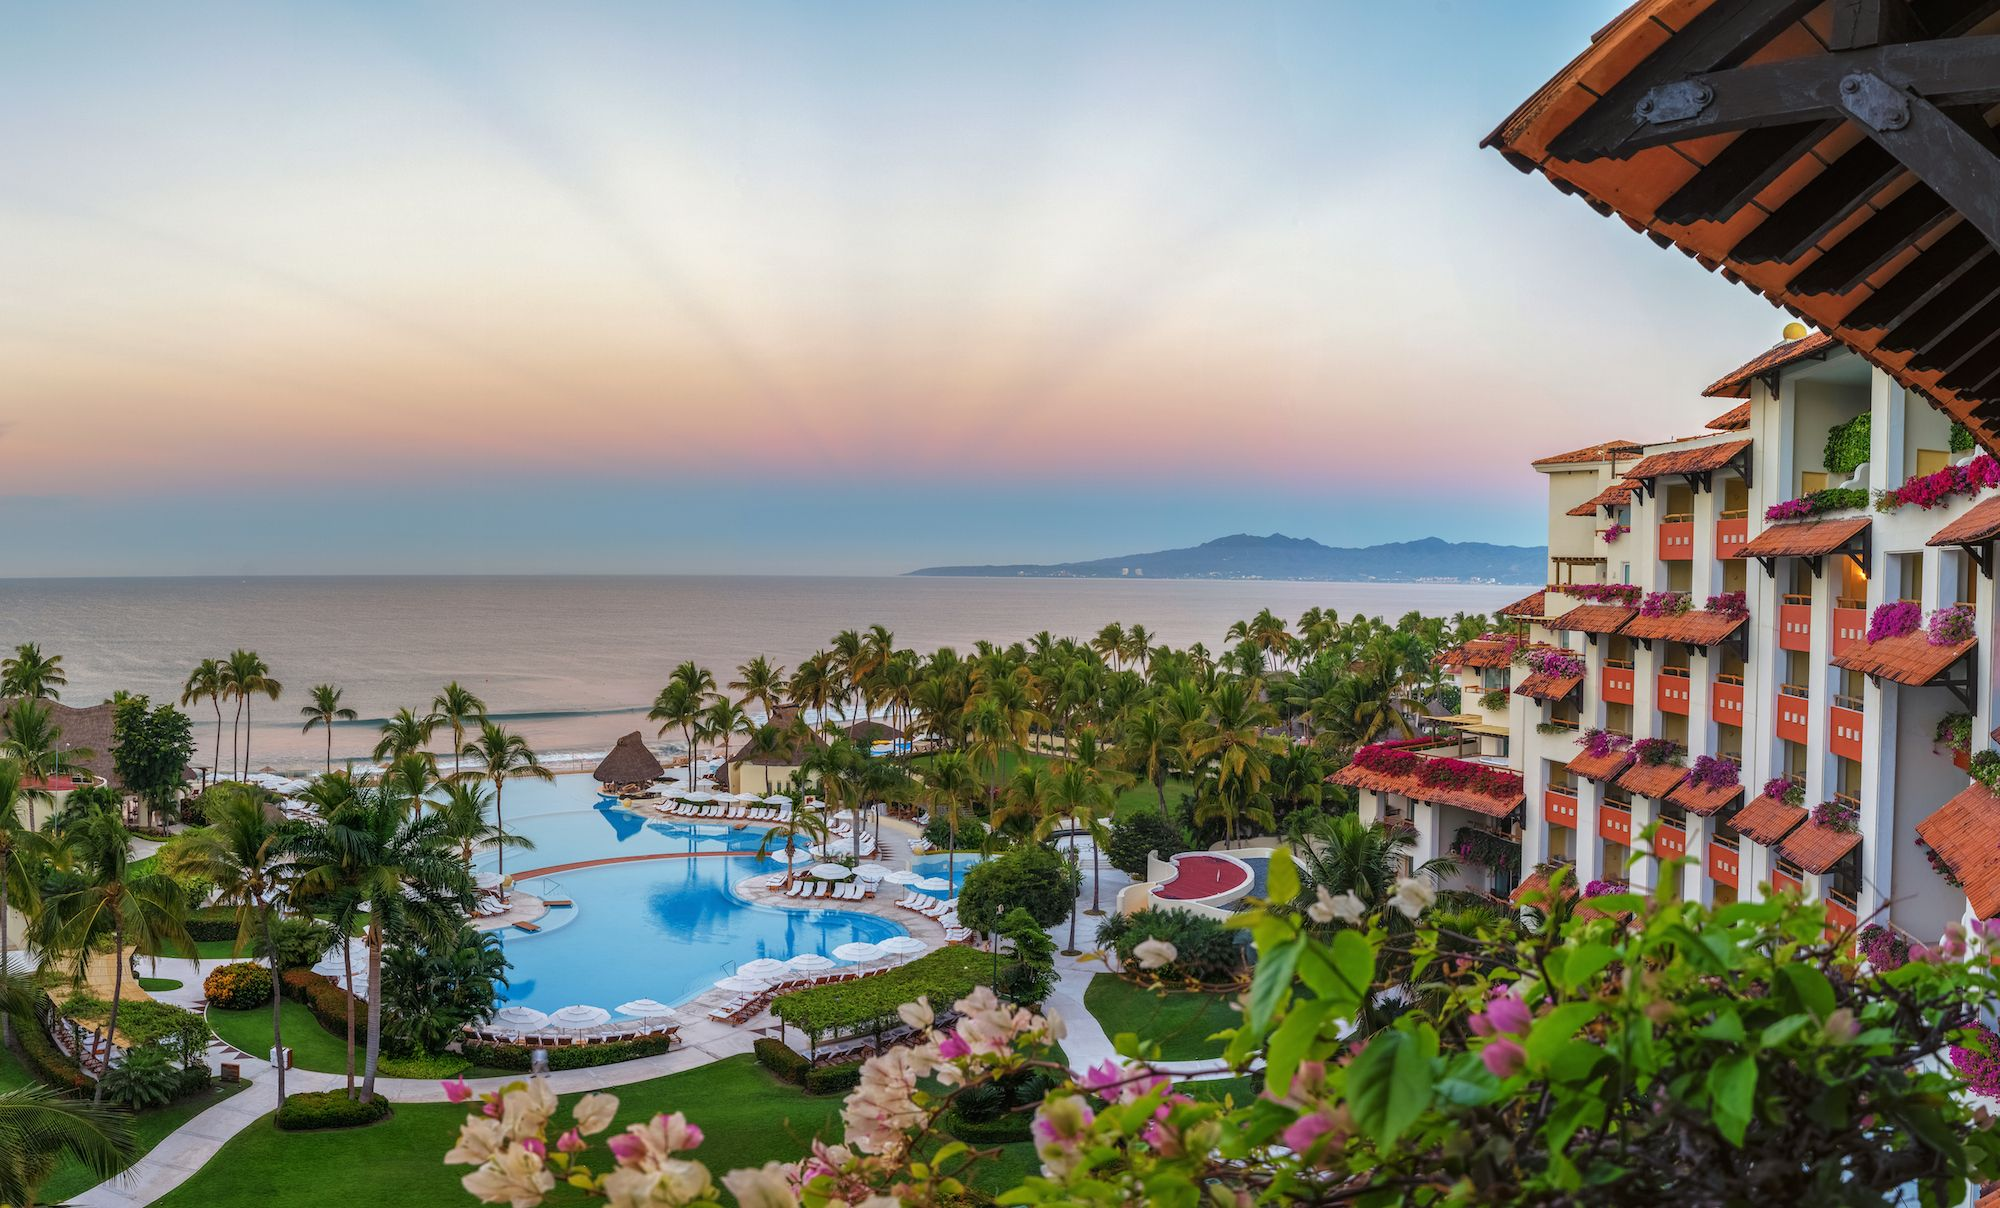 15 best all inclusive resorts in the world luxury all inclusive hotels rh elledecor com best all inclusive resorts in the world 2017 best all inclusive resorts in the world for families